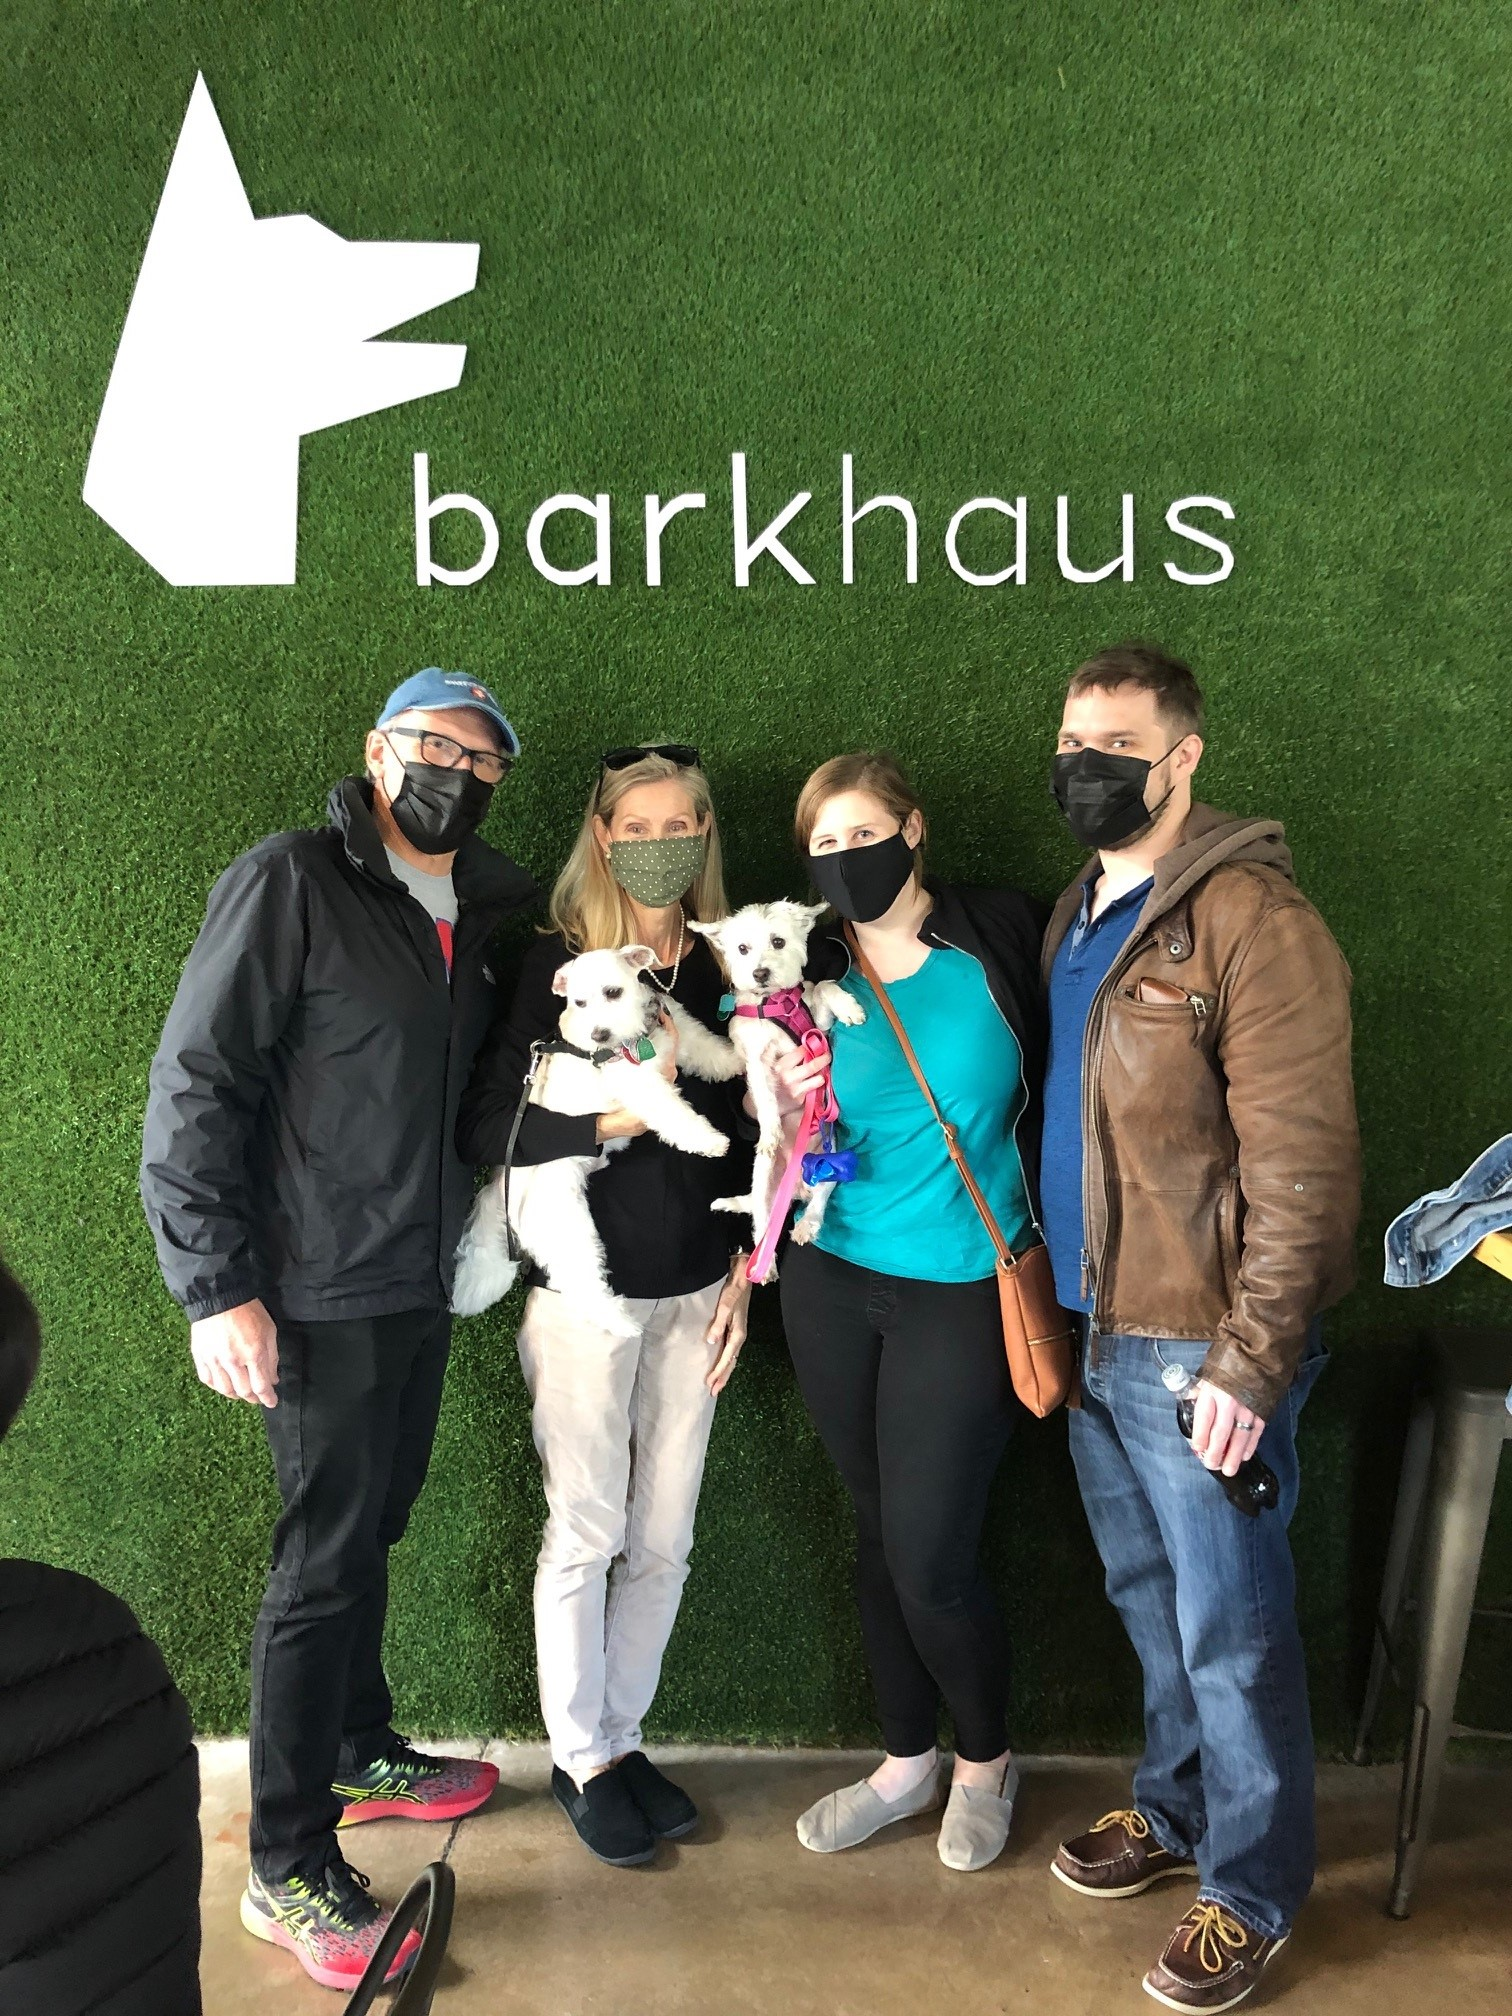 Four masked adults and two dogs take a photo in front of a green backdrop. Text in the background reads Barkhaus with a dog logo.